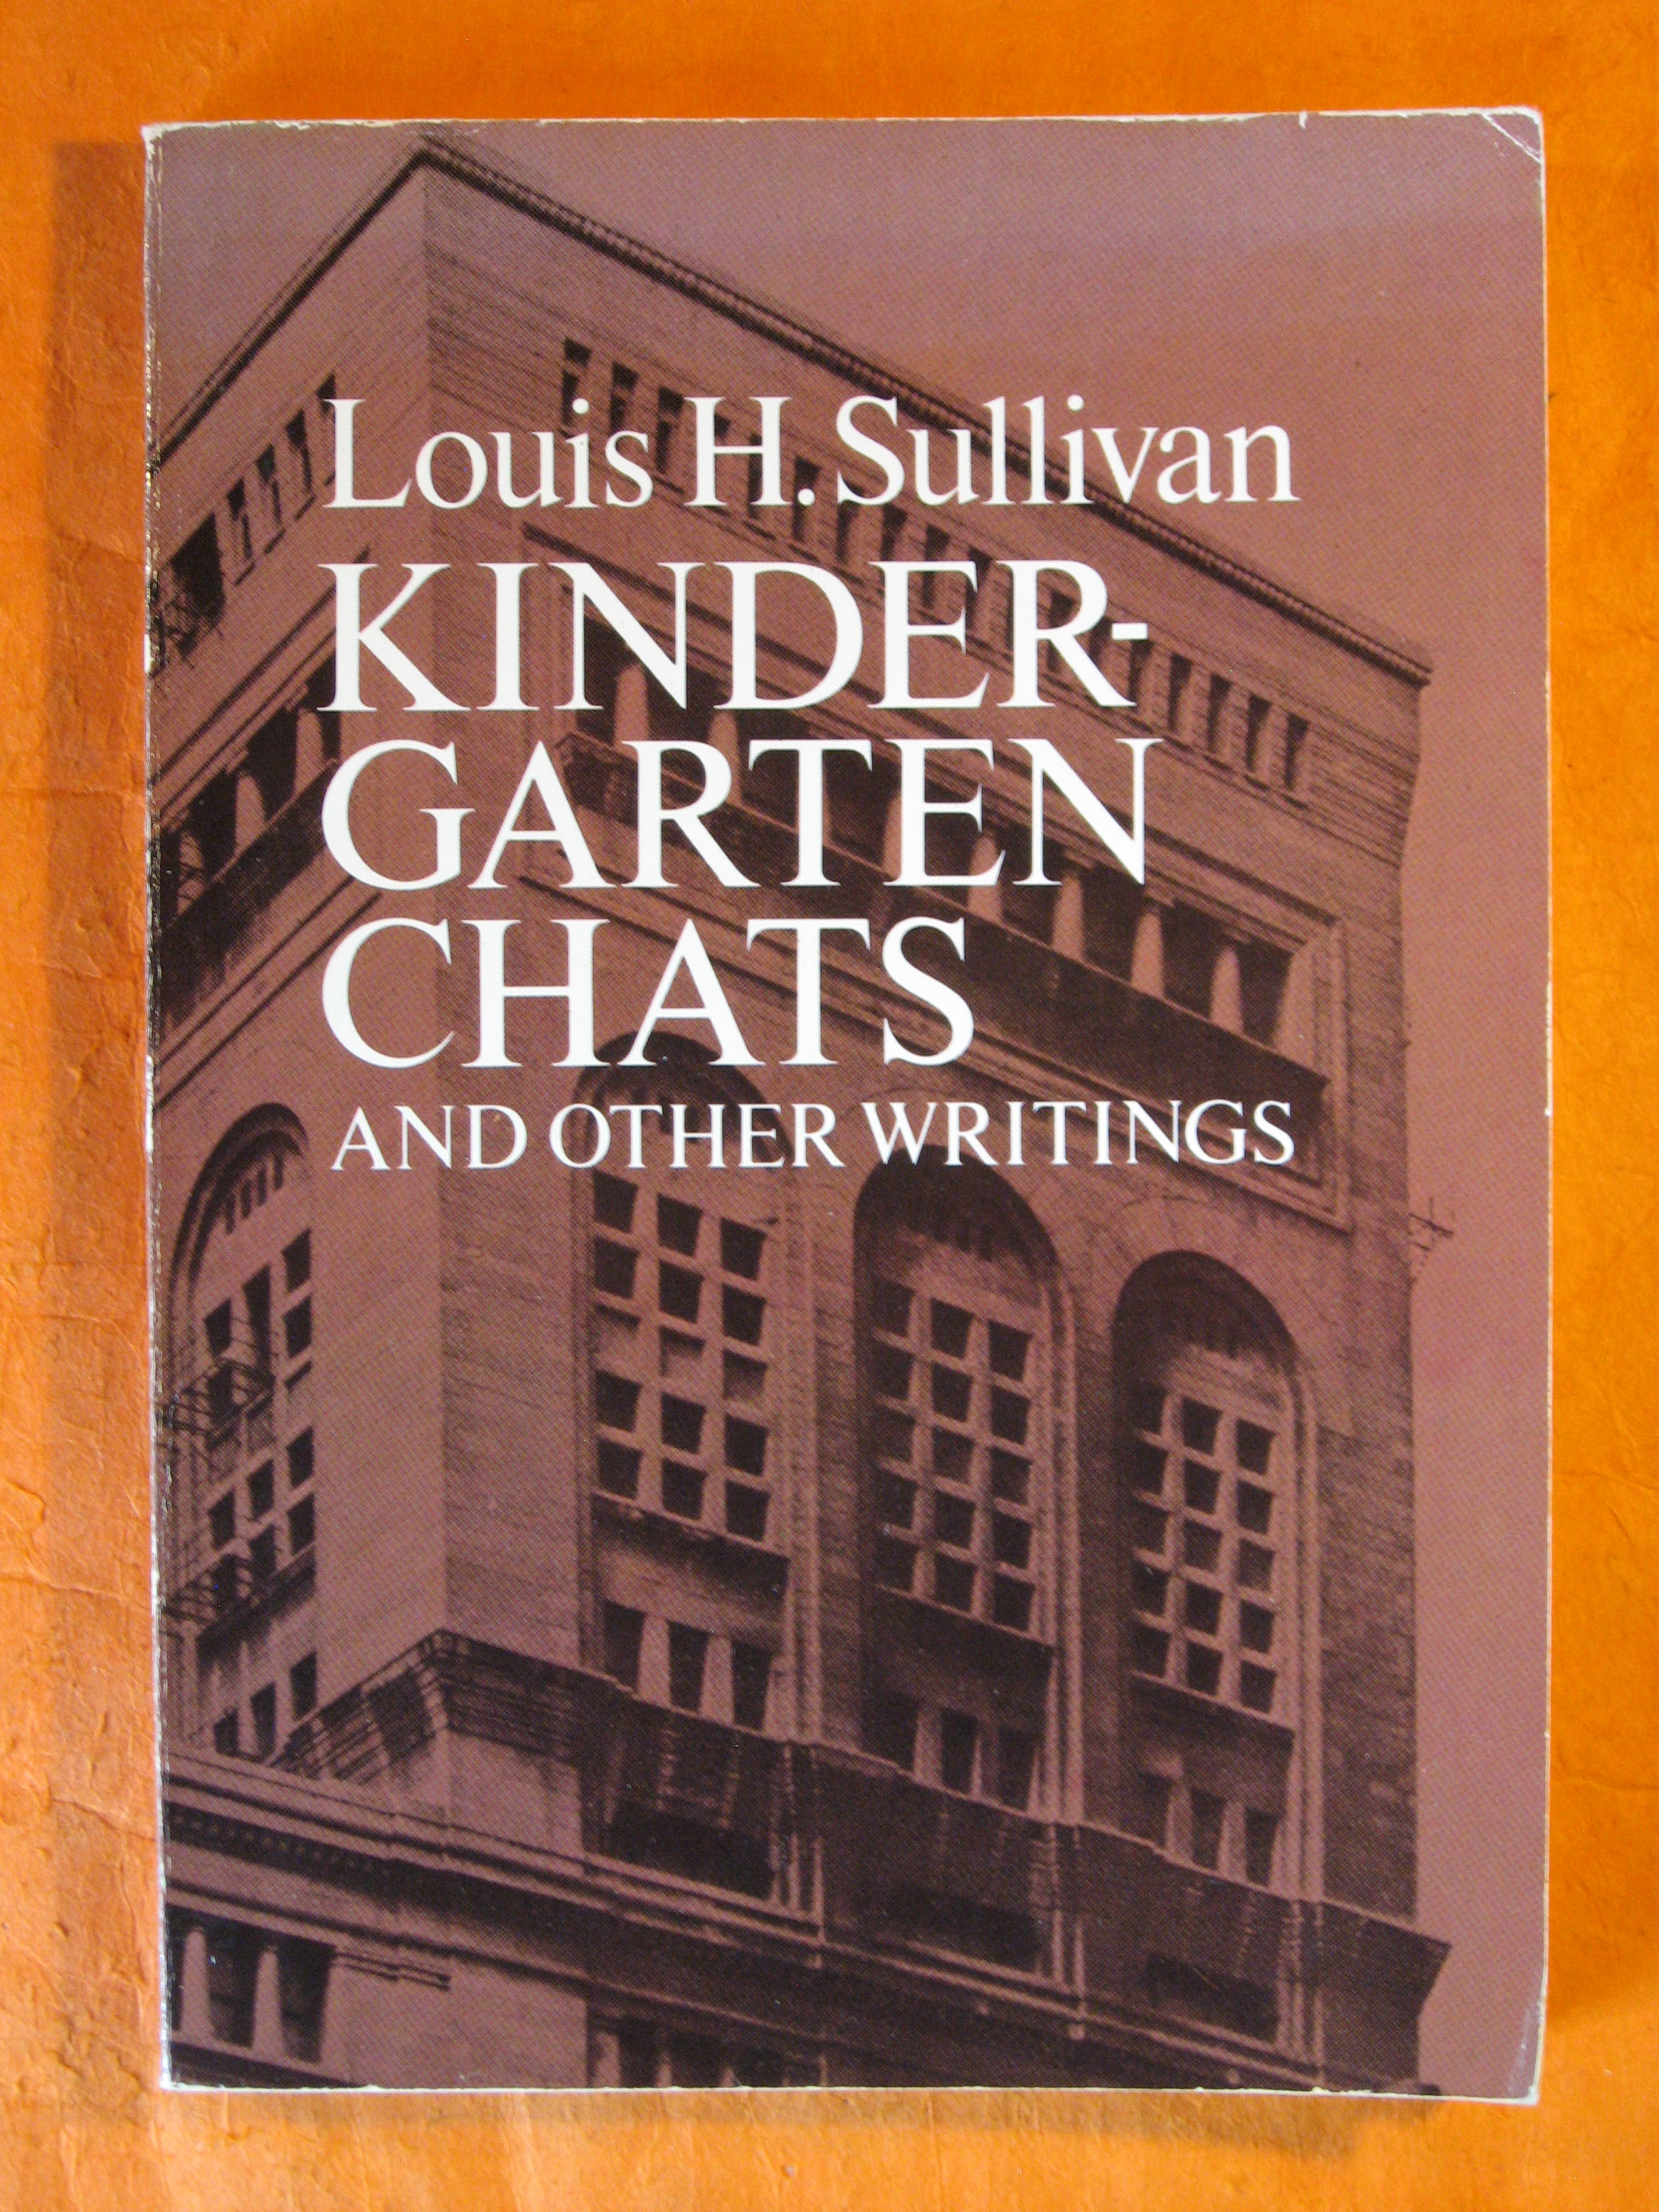 Image for Kindergarten Chats and Other Writings (Dover Architecture)